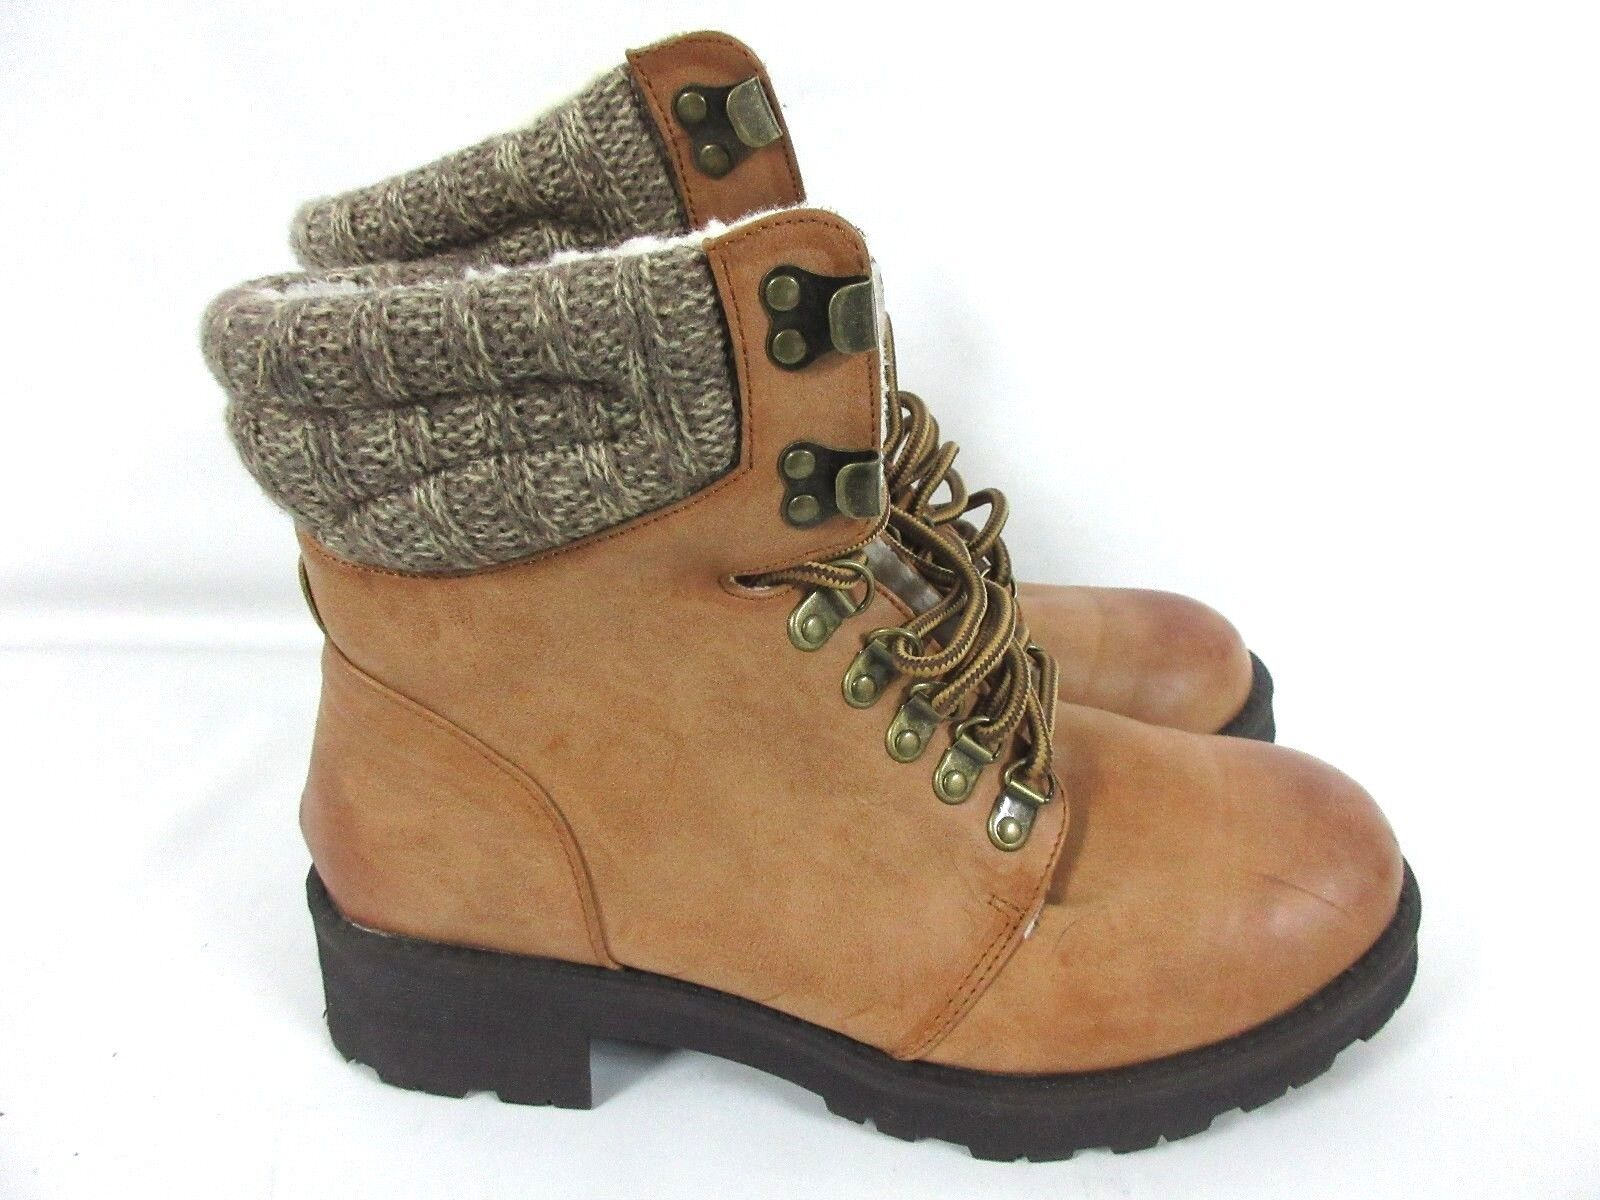 Mia Maylynn Women's Camel Boots Knit Cuff Detail Lace Up Boots Size 8.5M